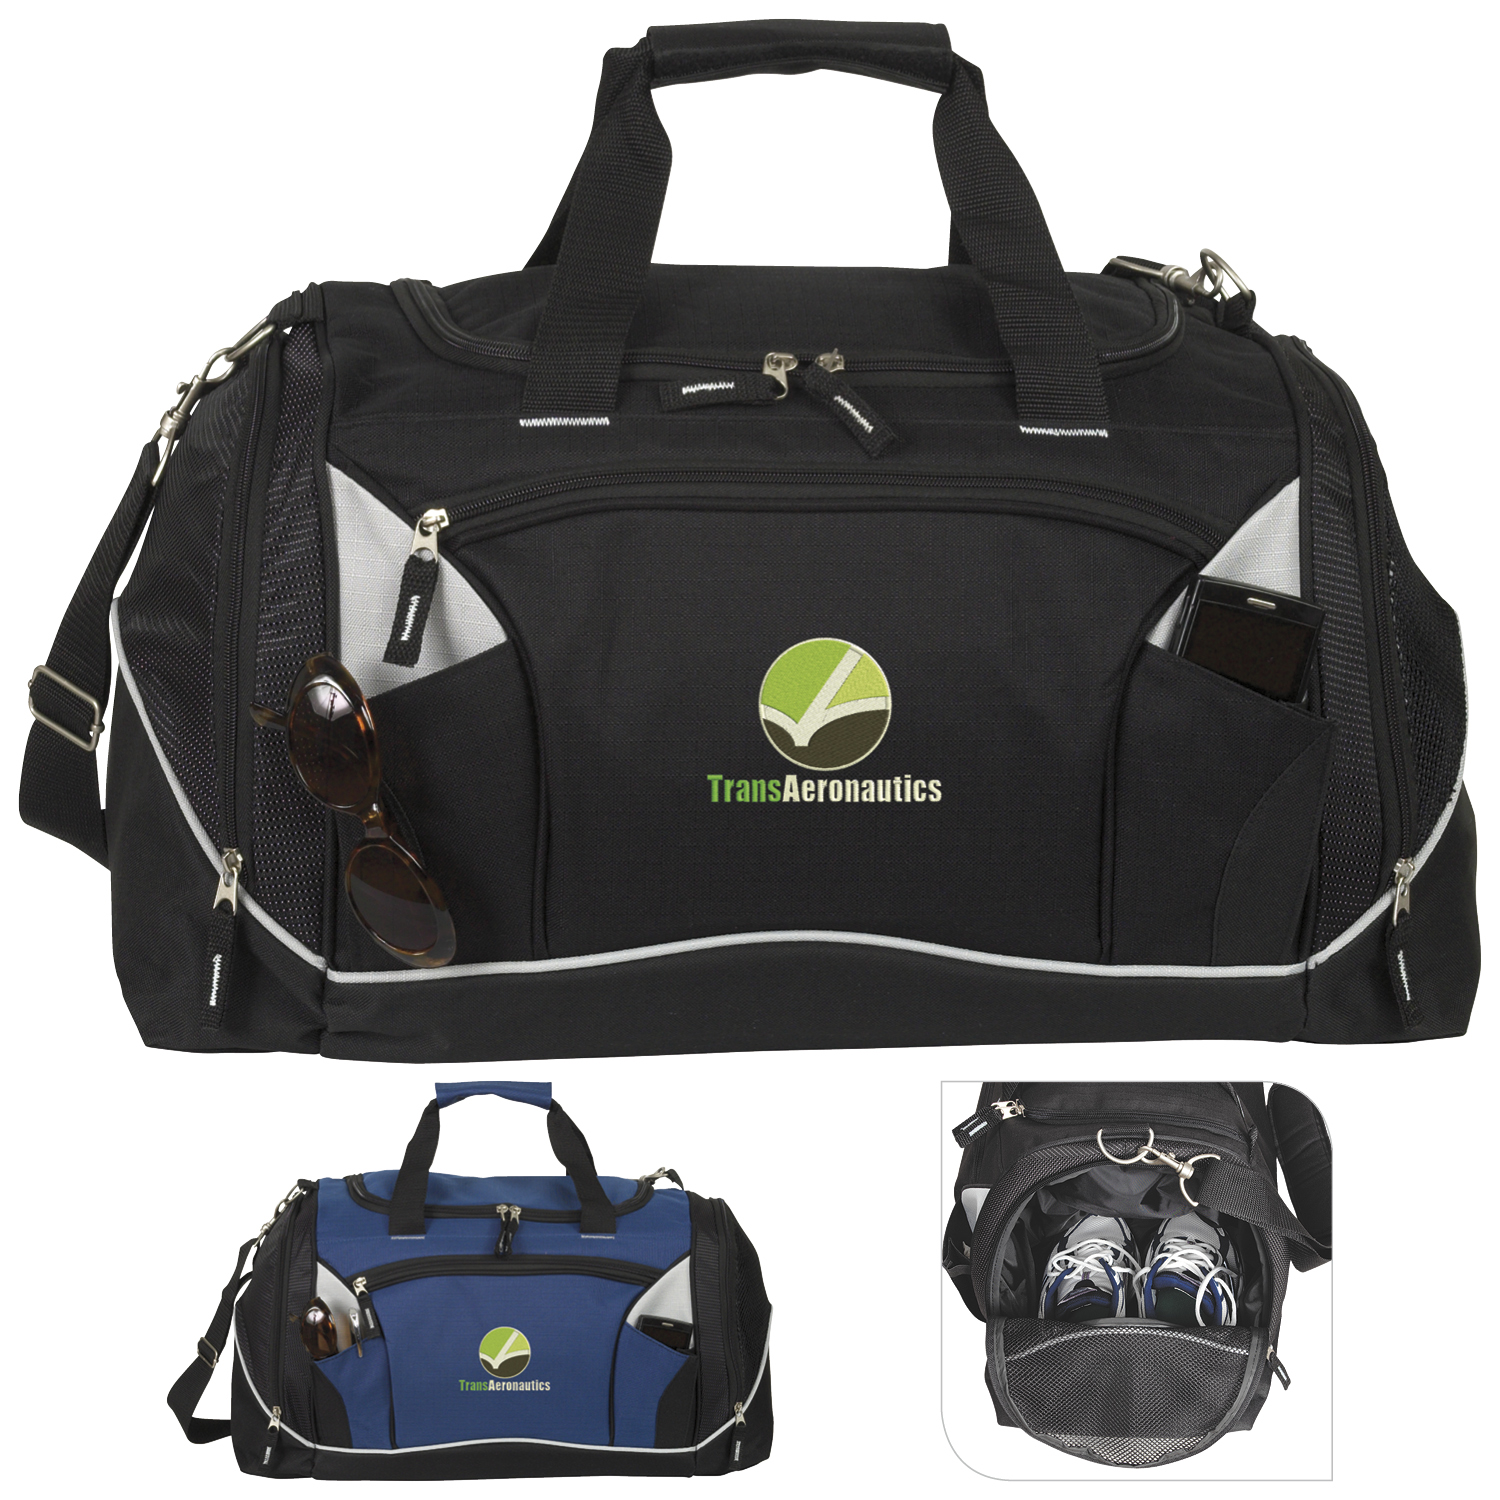 Atchison® AP6010 Tour of Duty Duffel